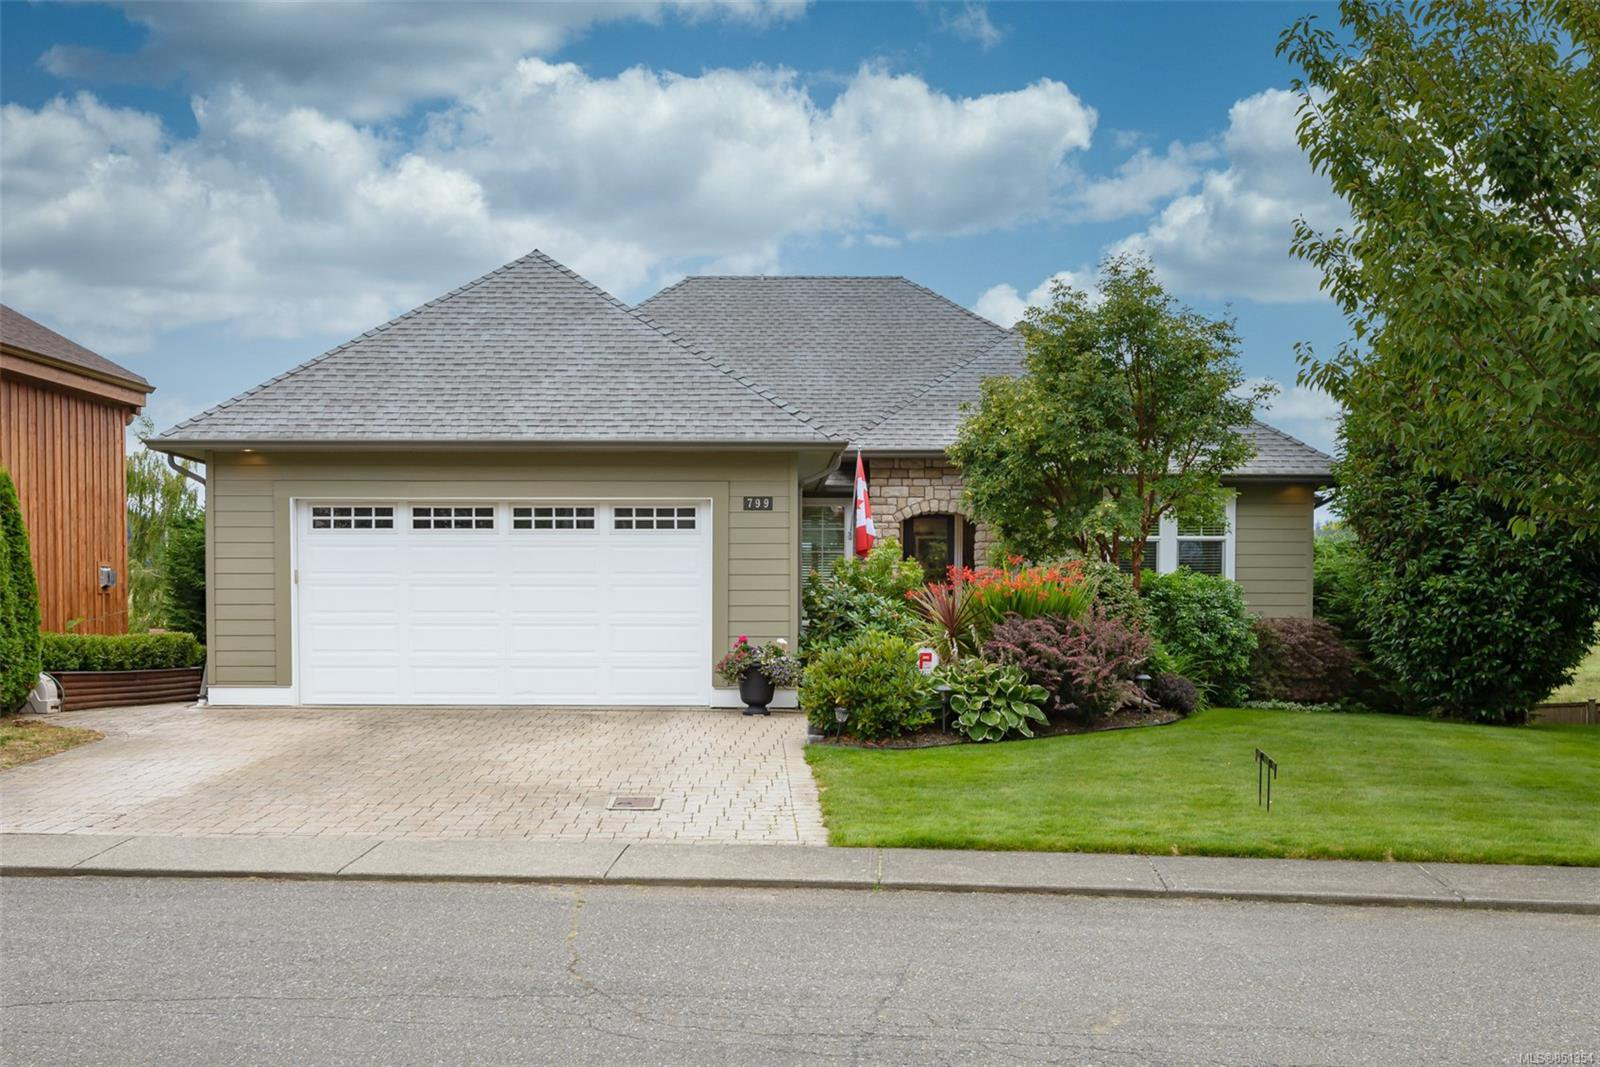 Main Photo: 799 Deal St in : CV Comox (Town of) House for sale (Comox Valley)  : MLS®# 851354